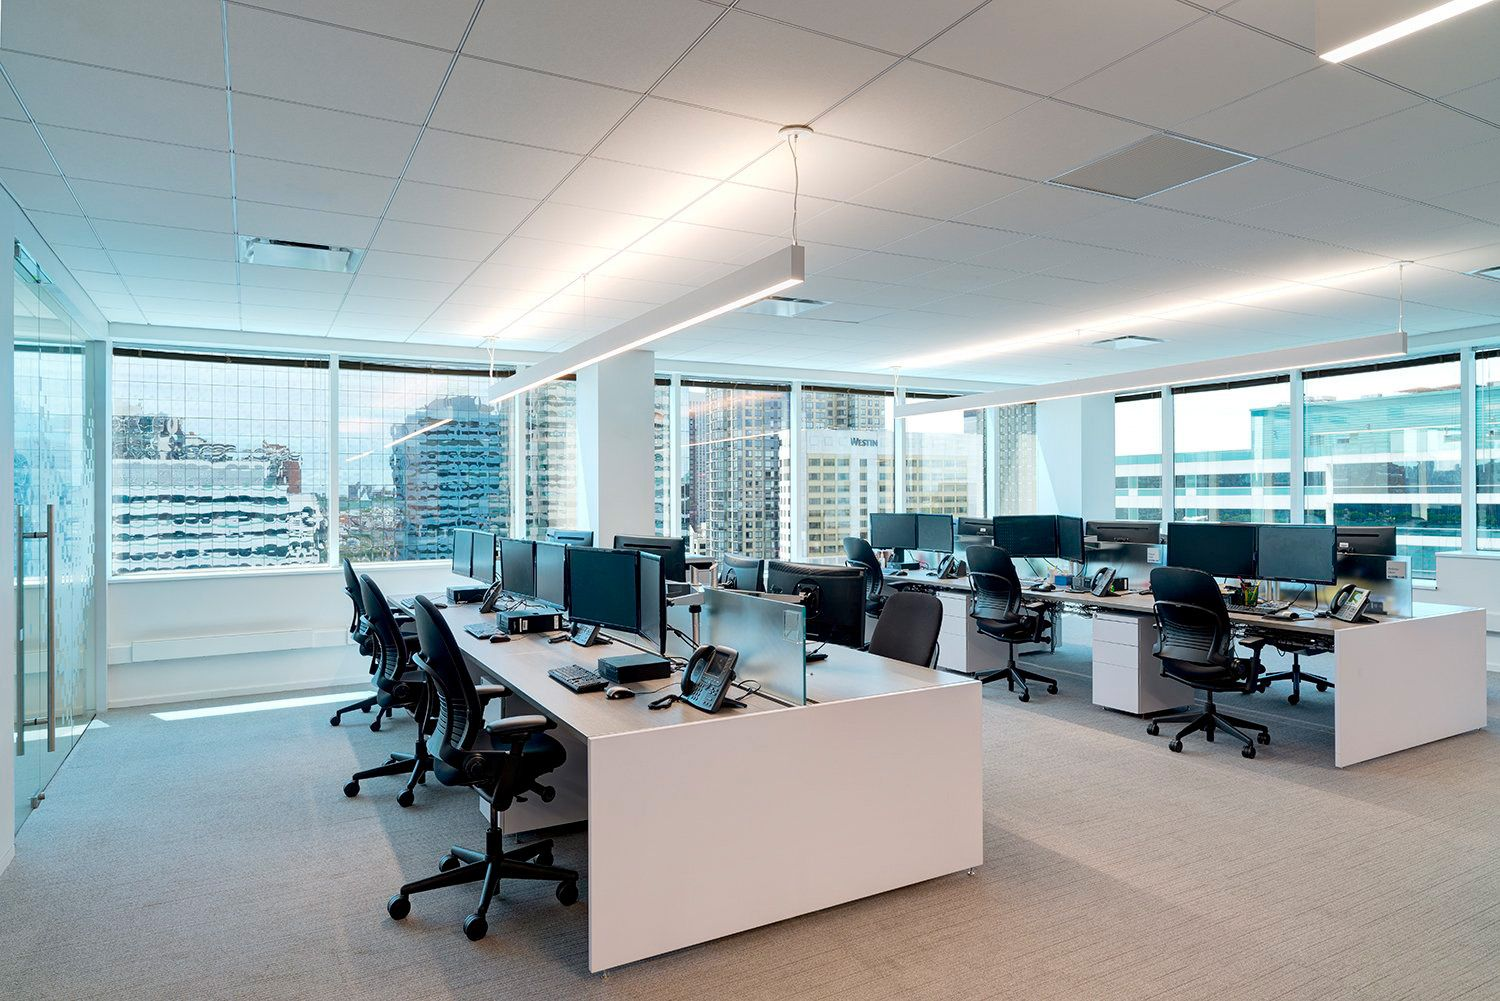 open office architecture images space. Office Tour: Conifer Financial Services Offices \u2013 Jersey City. City OfficeOpen OfficeOffice SpacesArchitecture Open Architecture Images Space